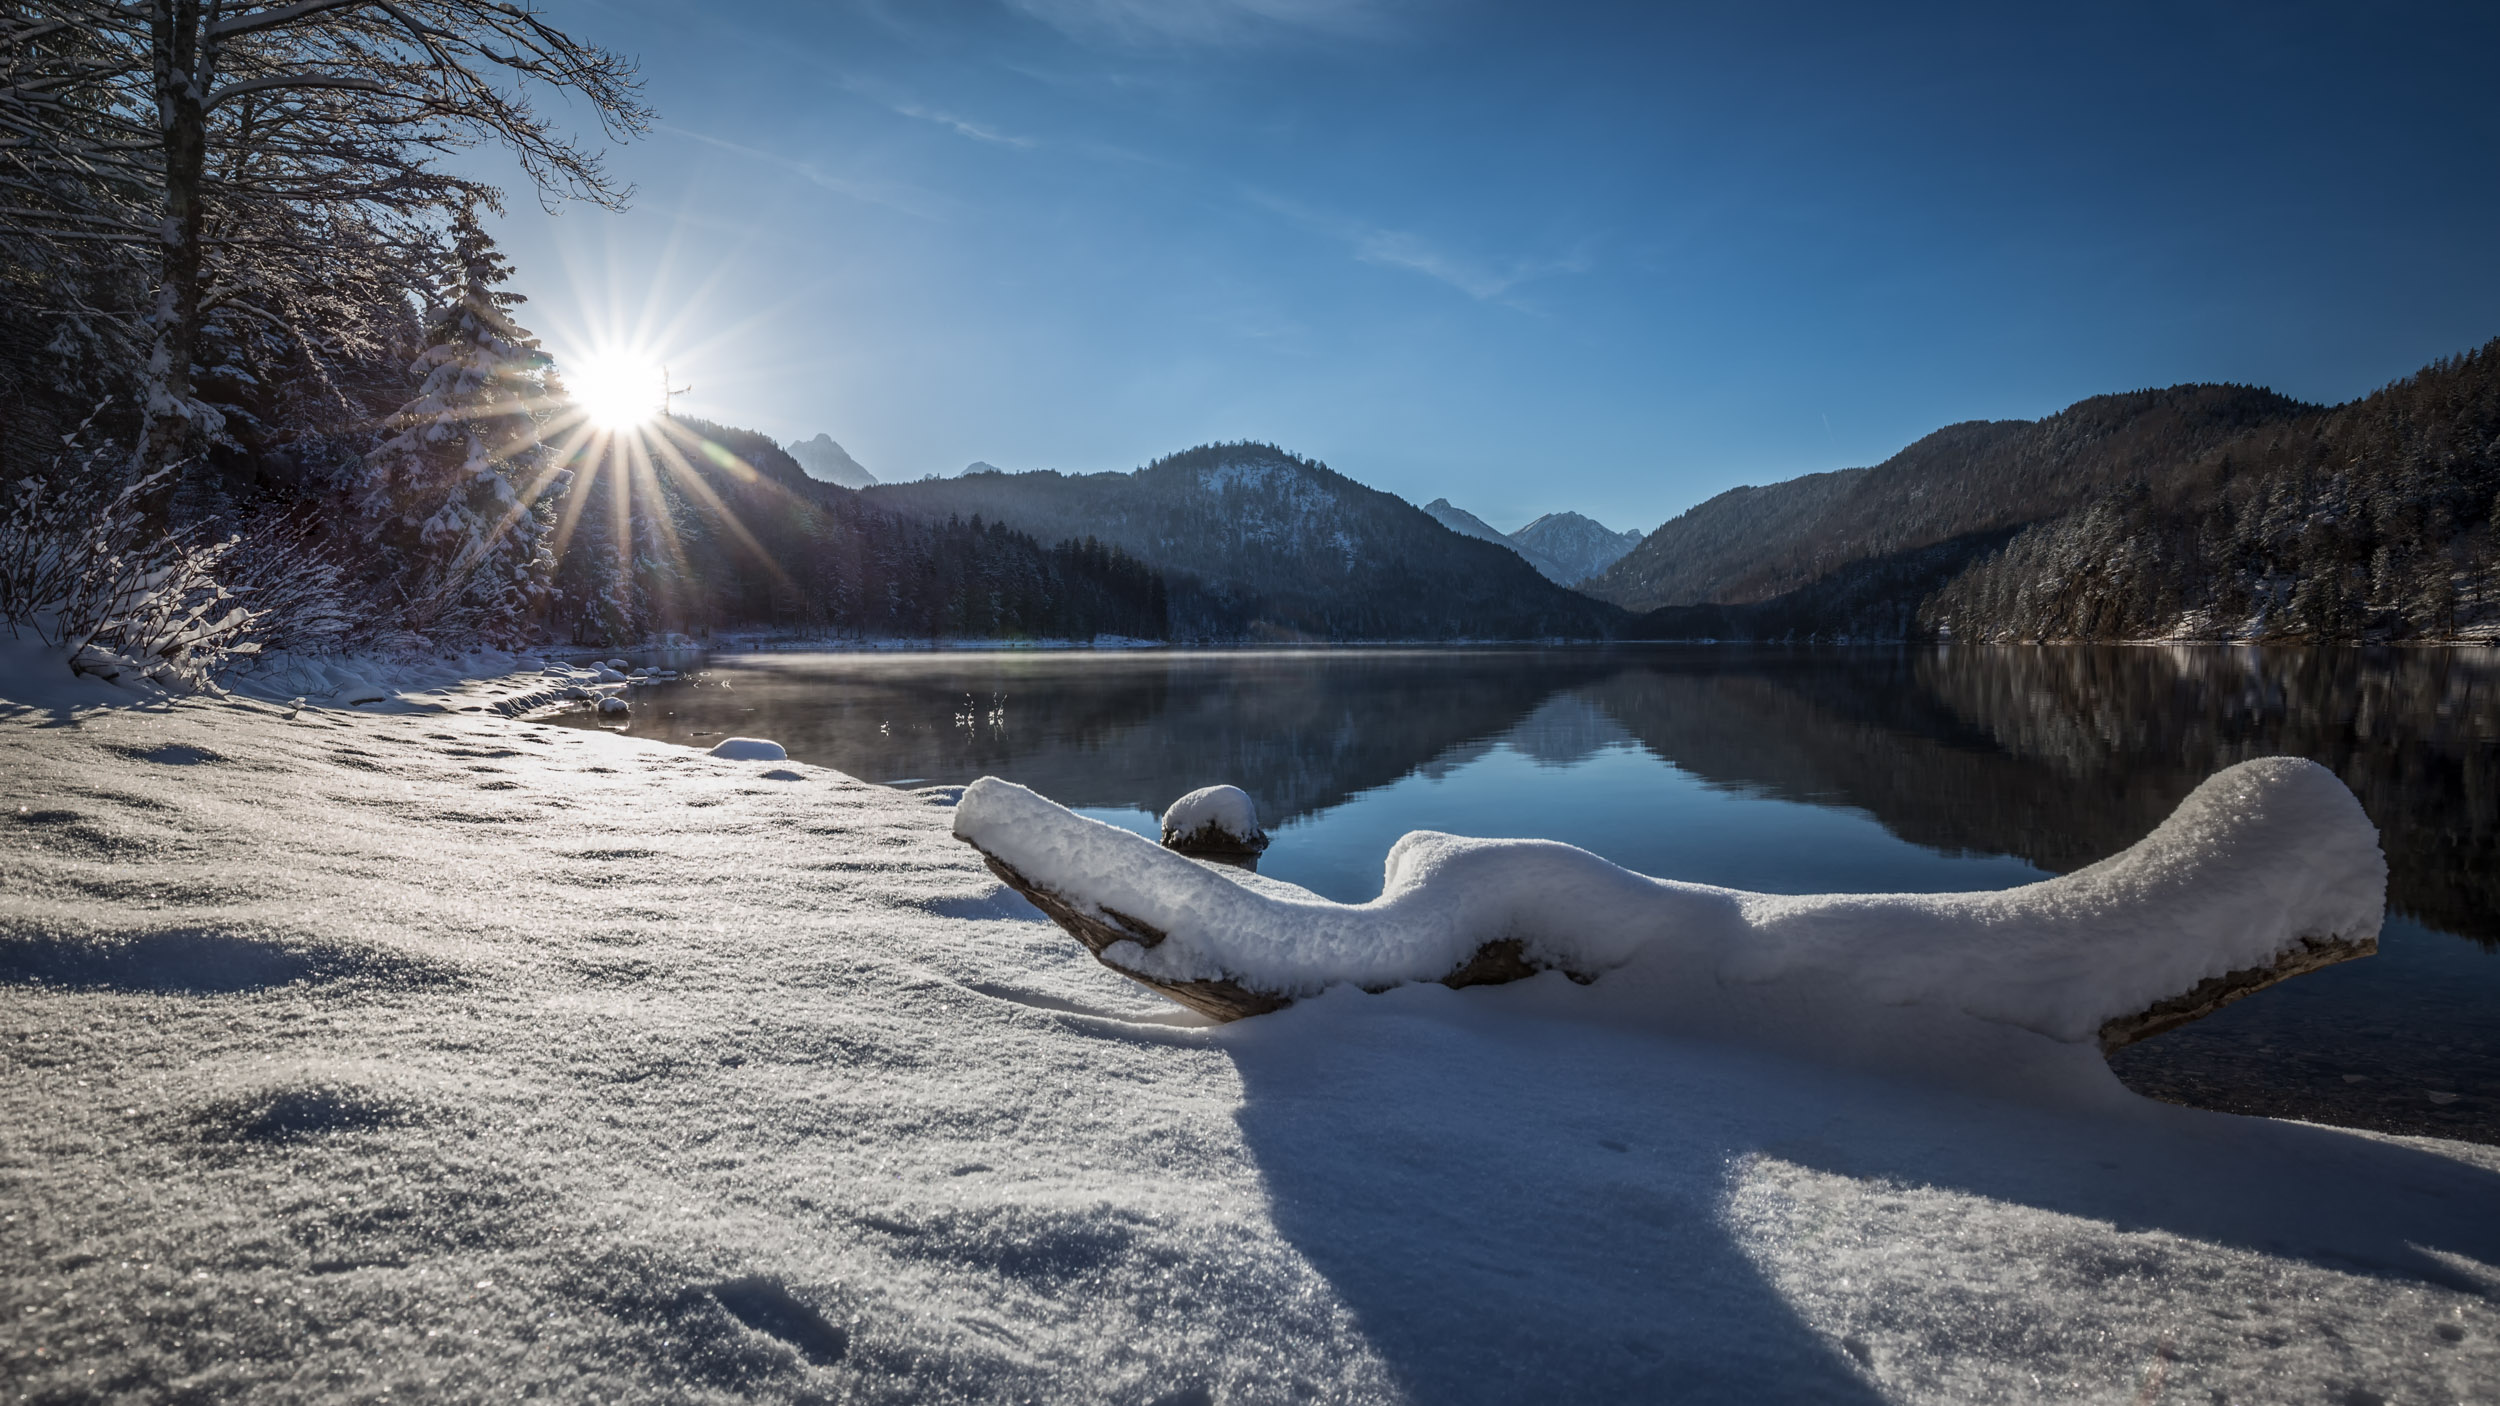 Sunlight at the Alpsee, Germany.